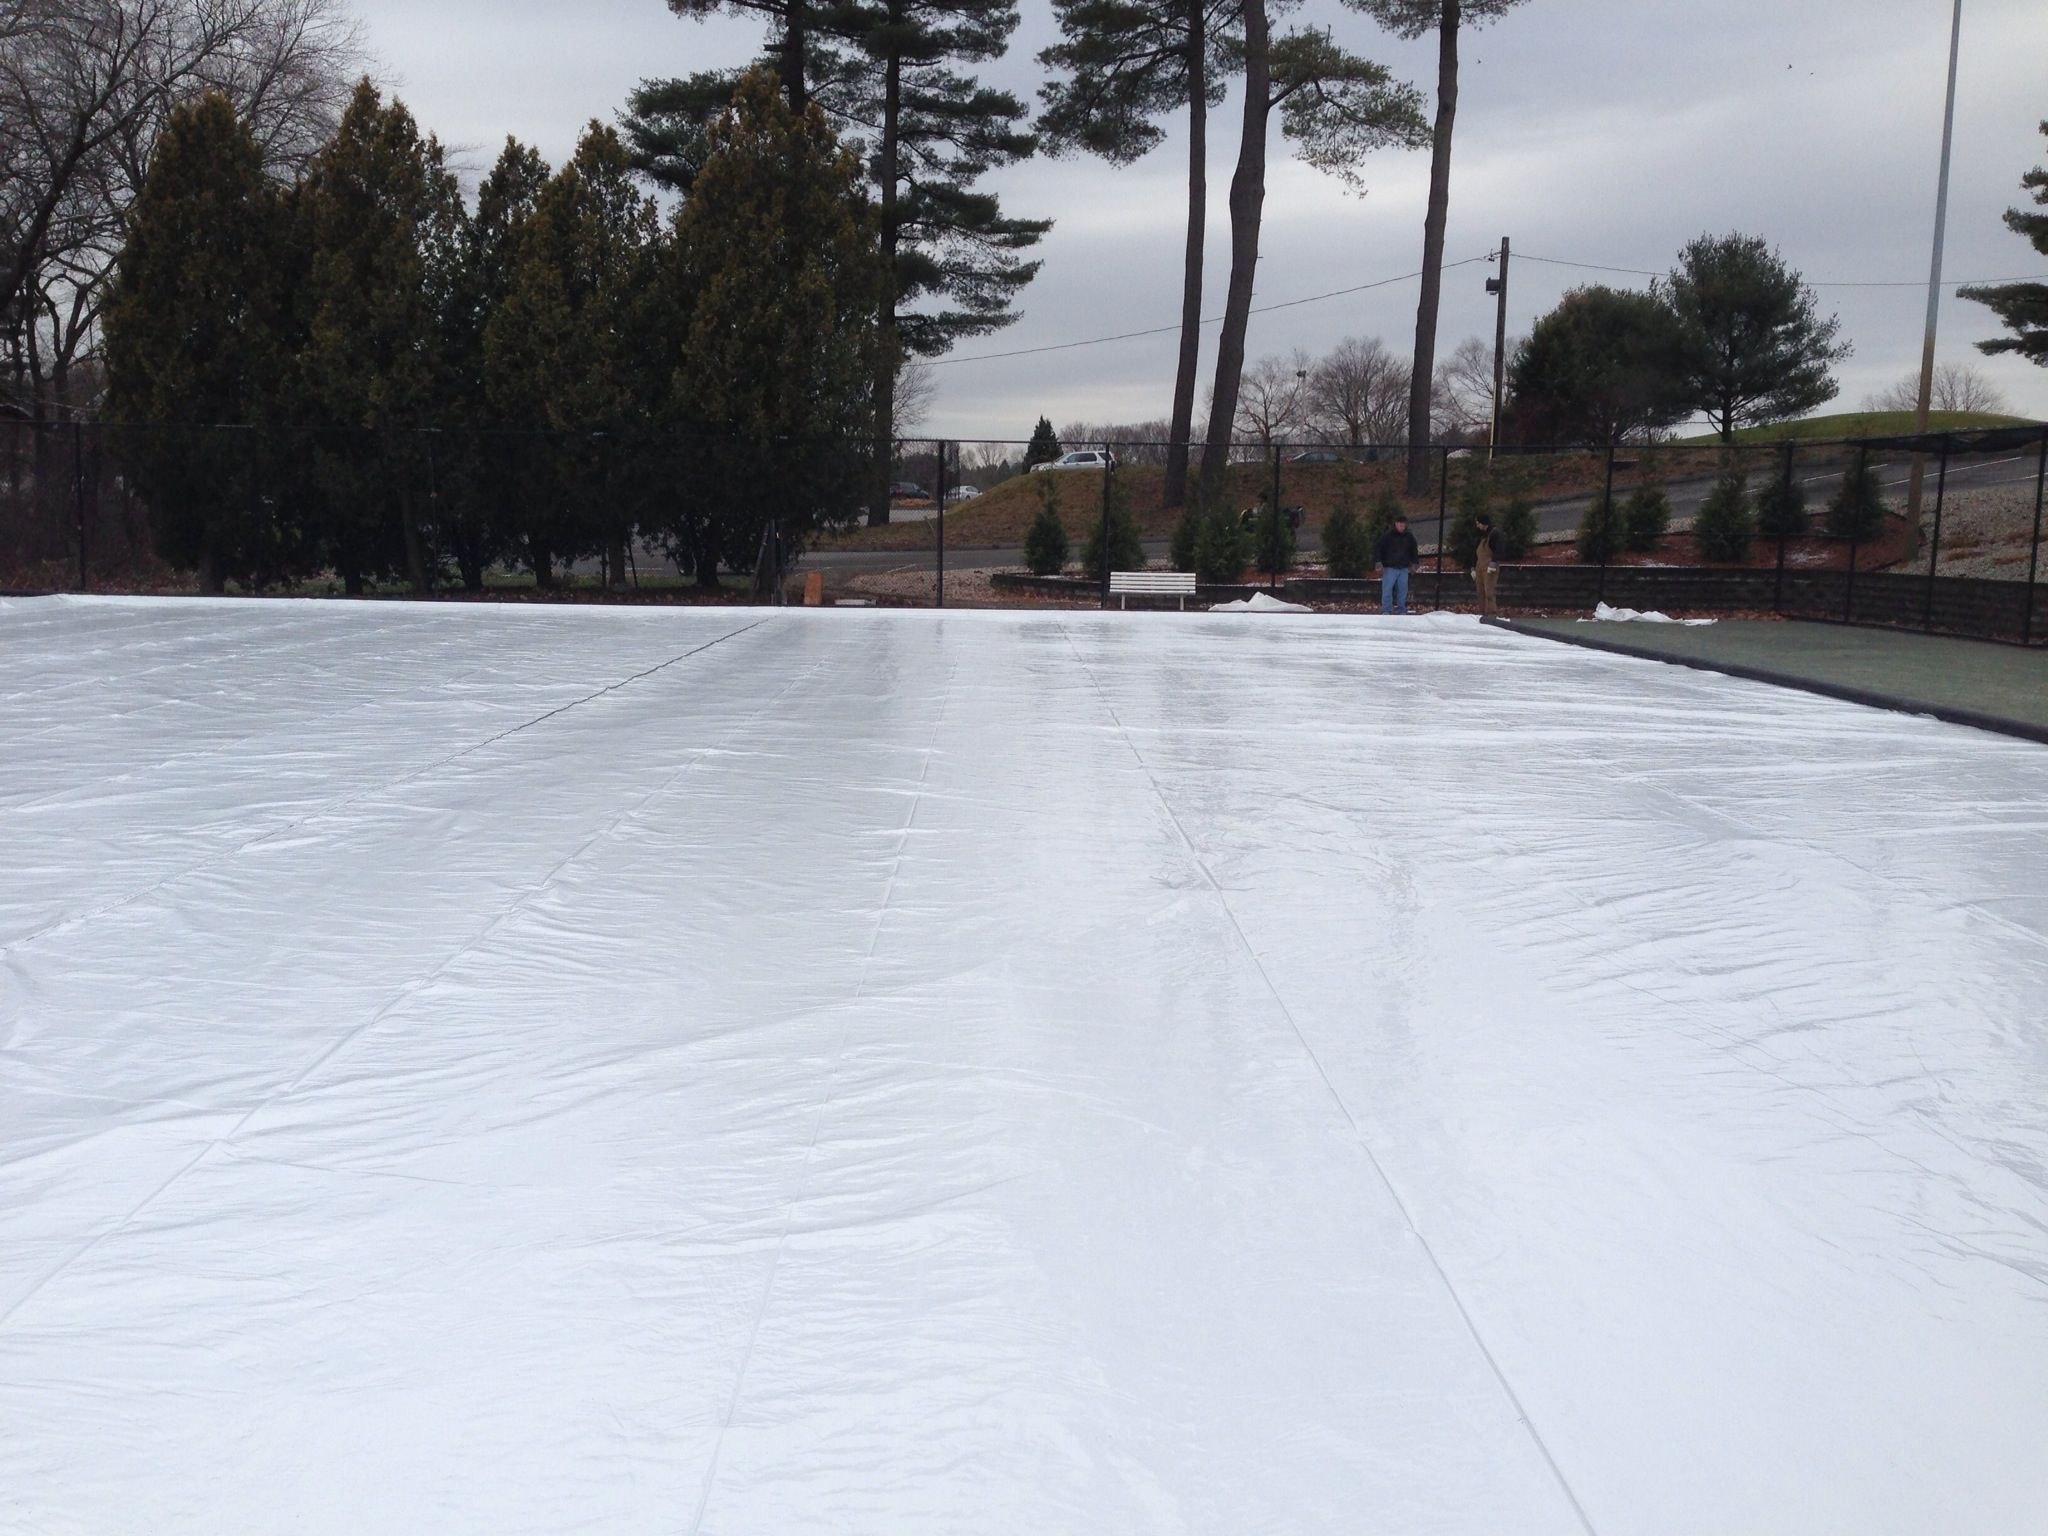 Ice rink construction is complete......now we just need it ...